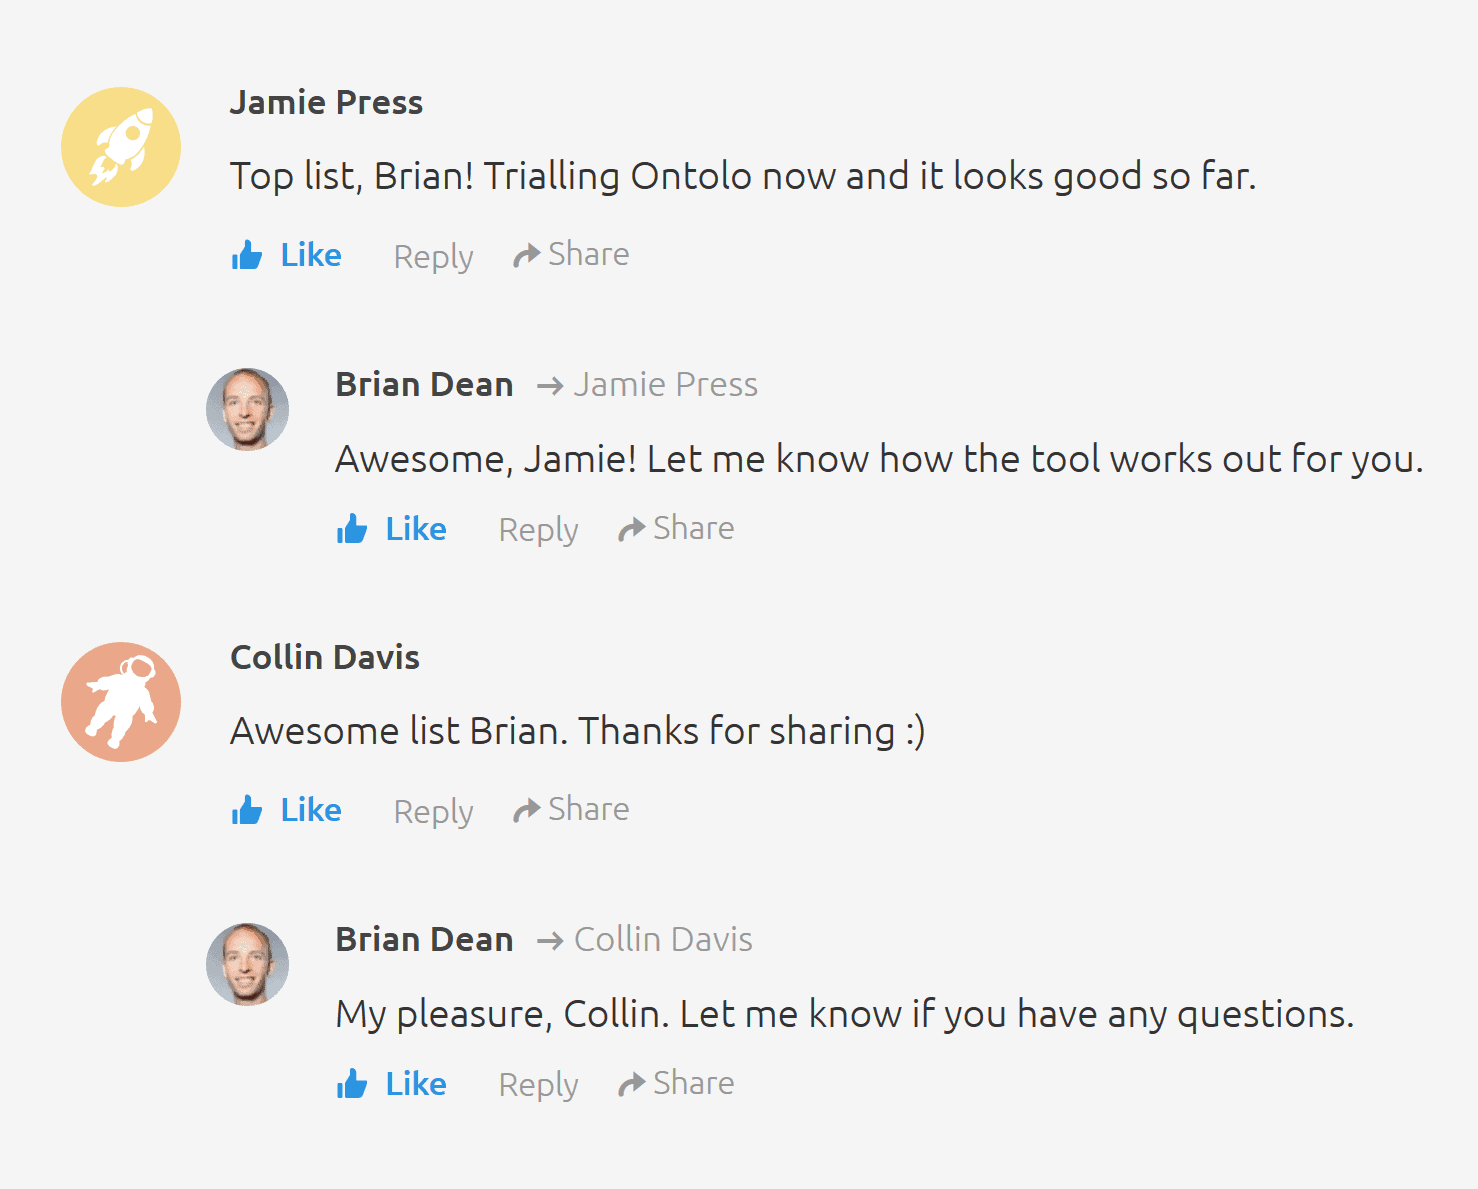 Comments on a guest post